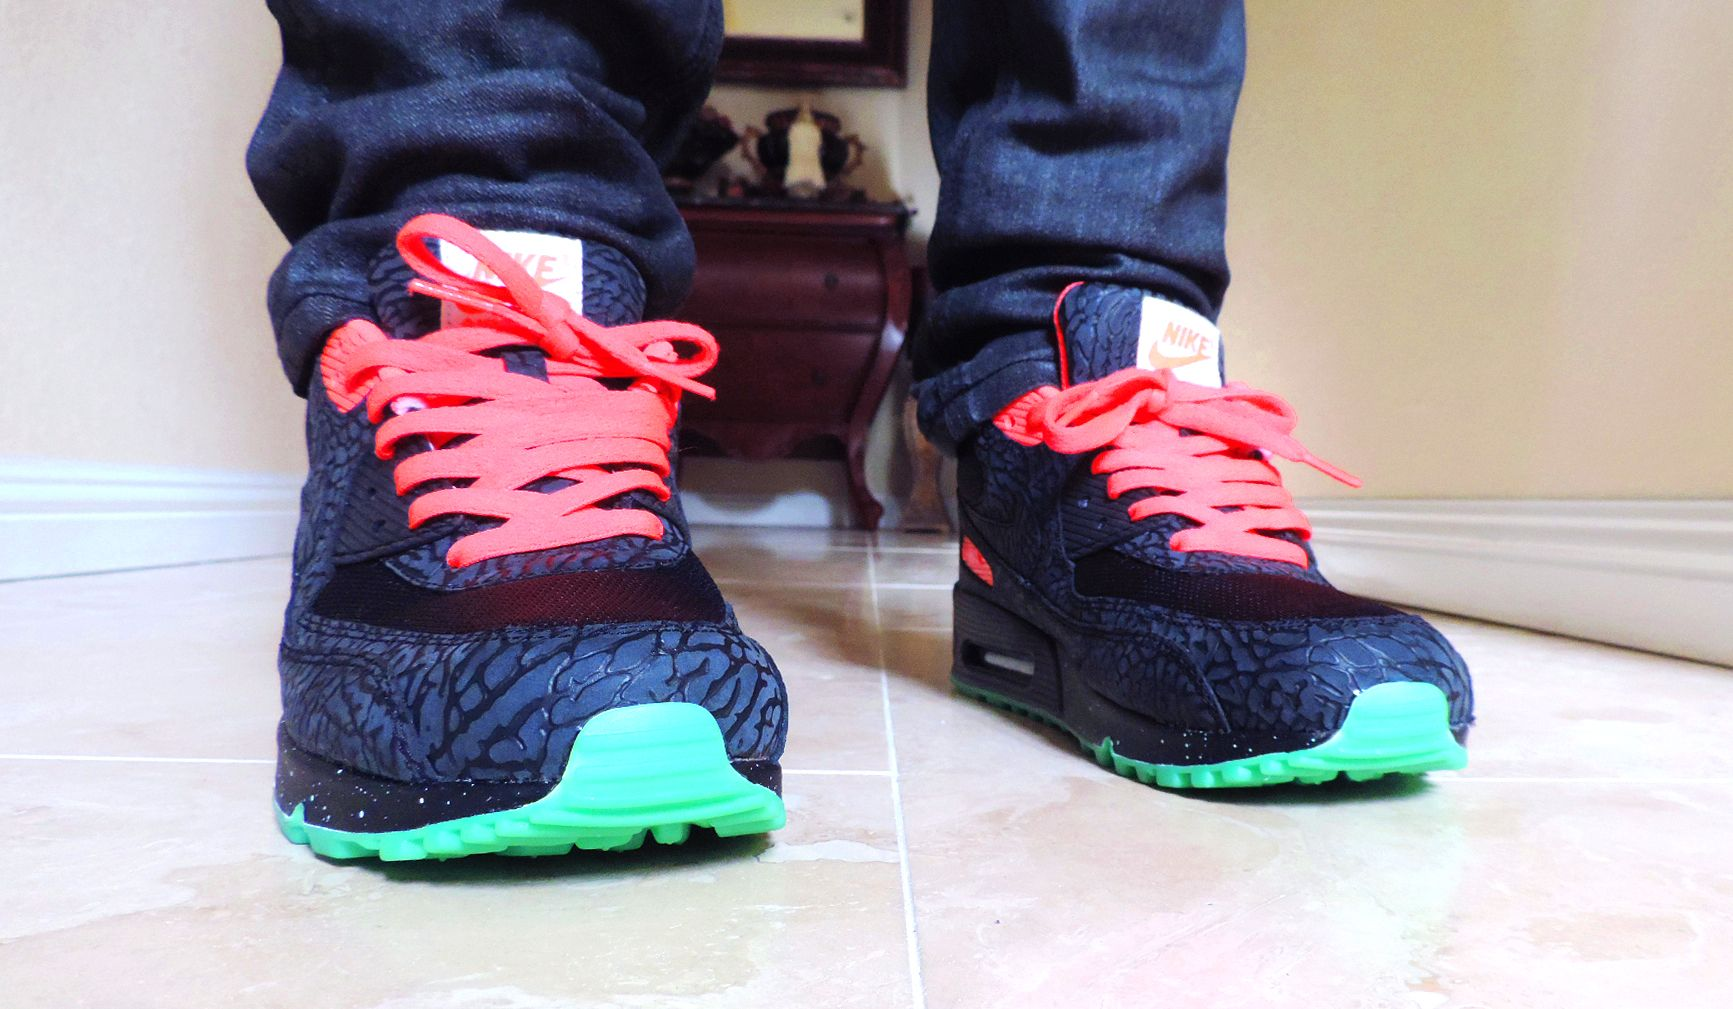 sale retailer 85e91 8c642 ... switzerland 3lab90 x yeezy 2 air max 90 id deisoned by niclacoste nike  airmax airmax90 sneakers